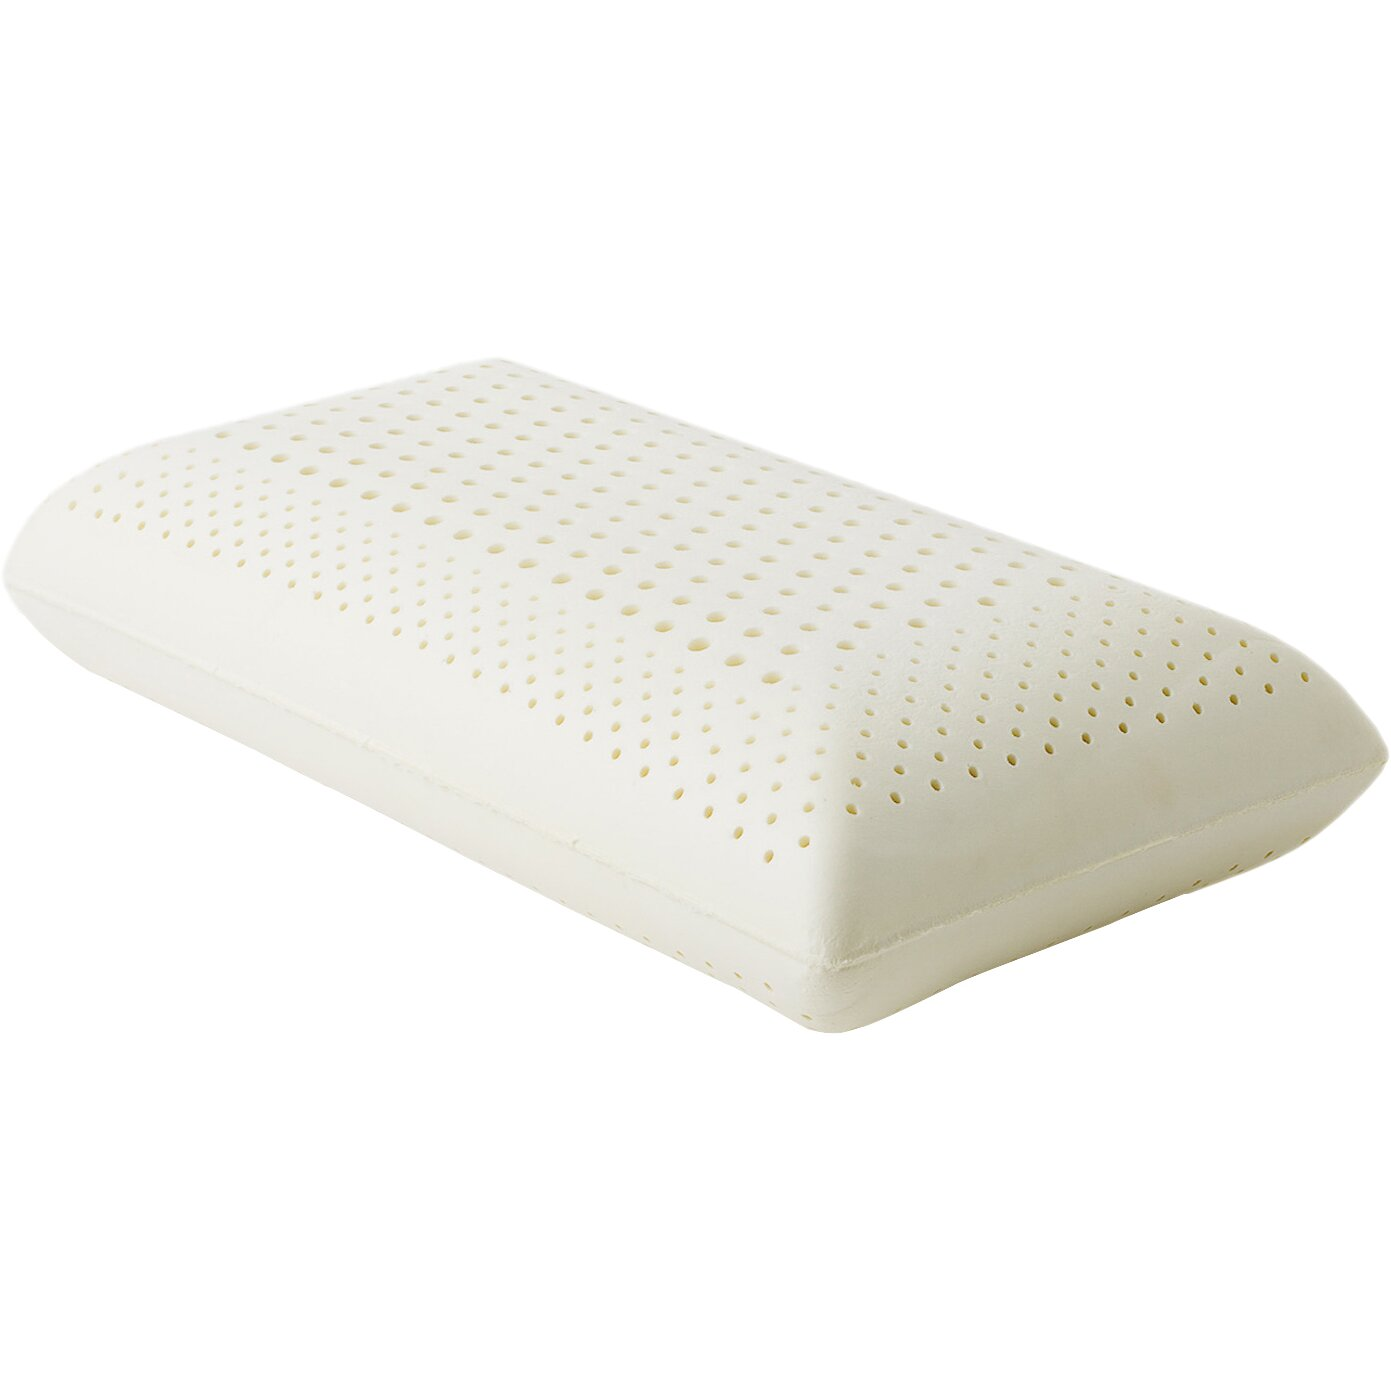 Malouf Zoned Dough Memory Low Loft Firm Foam Pillow By Z